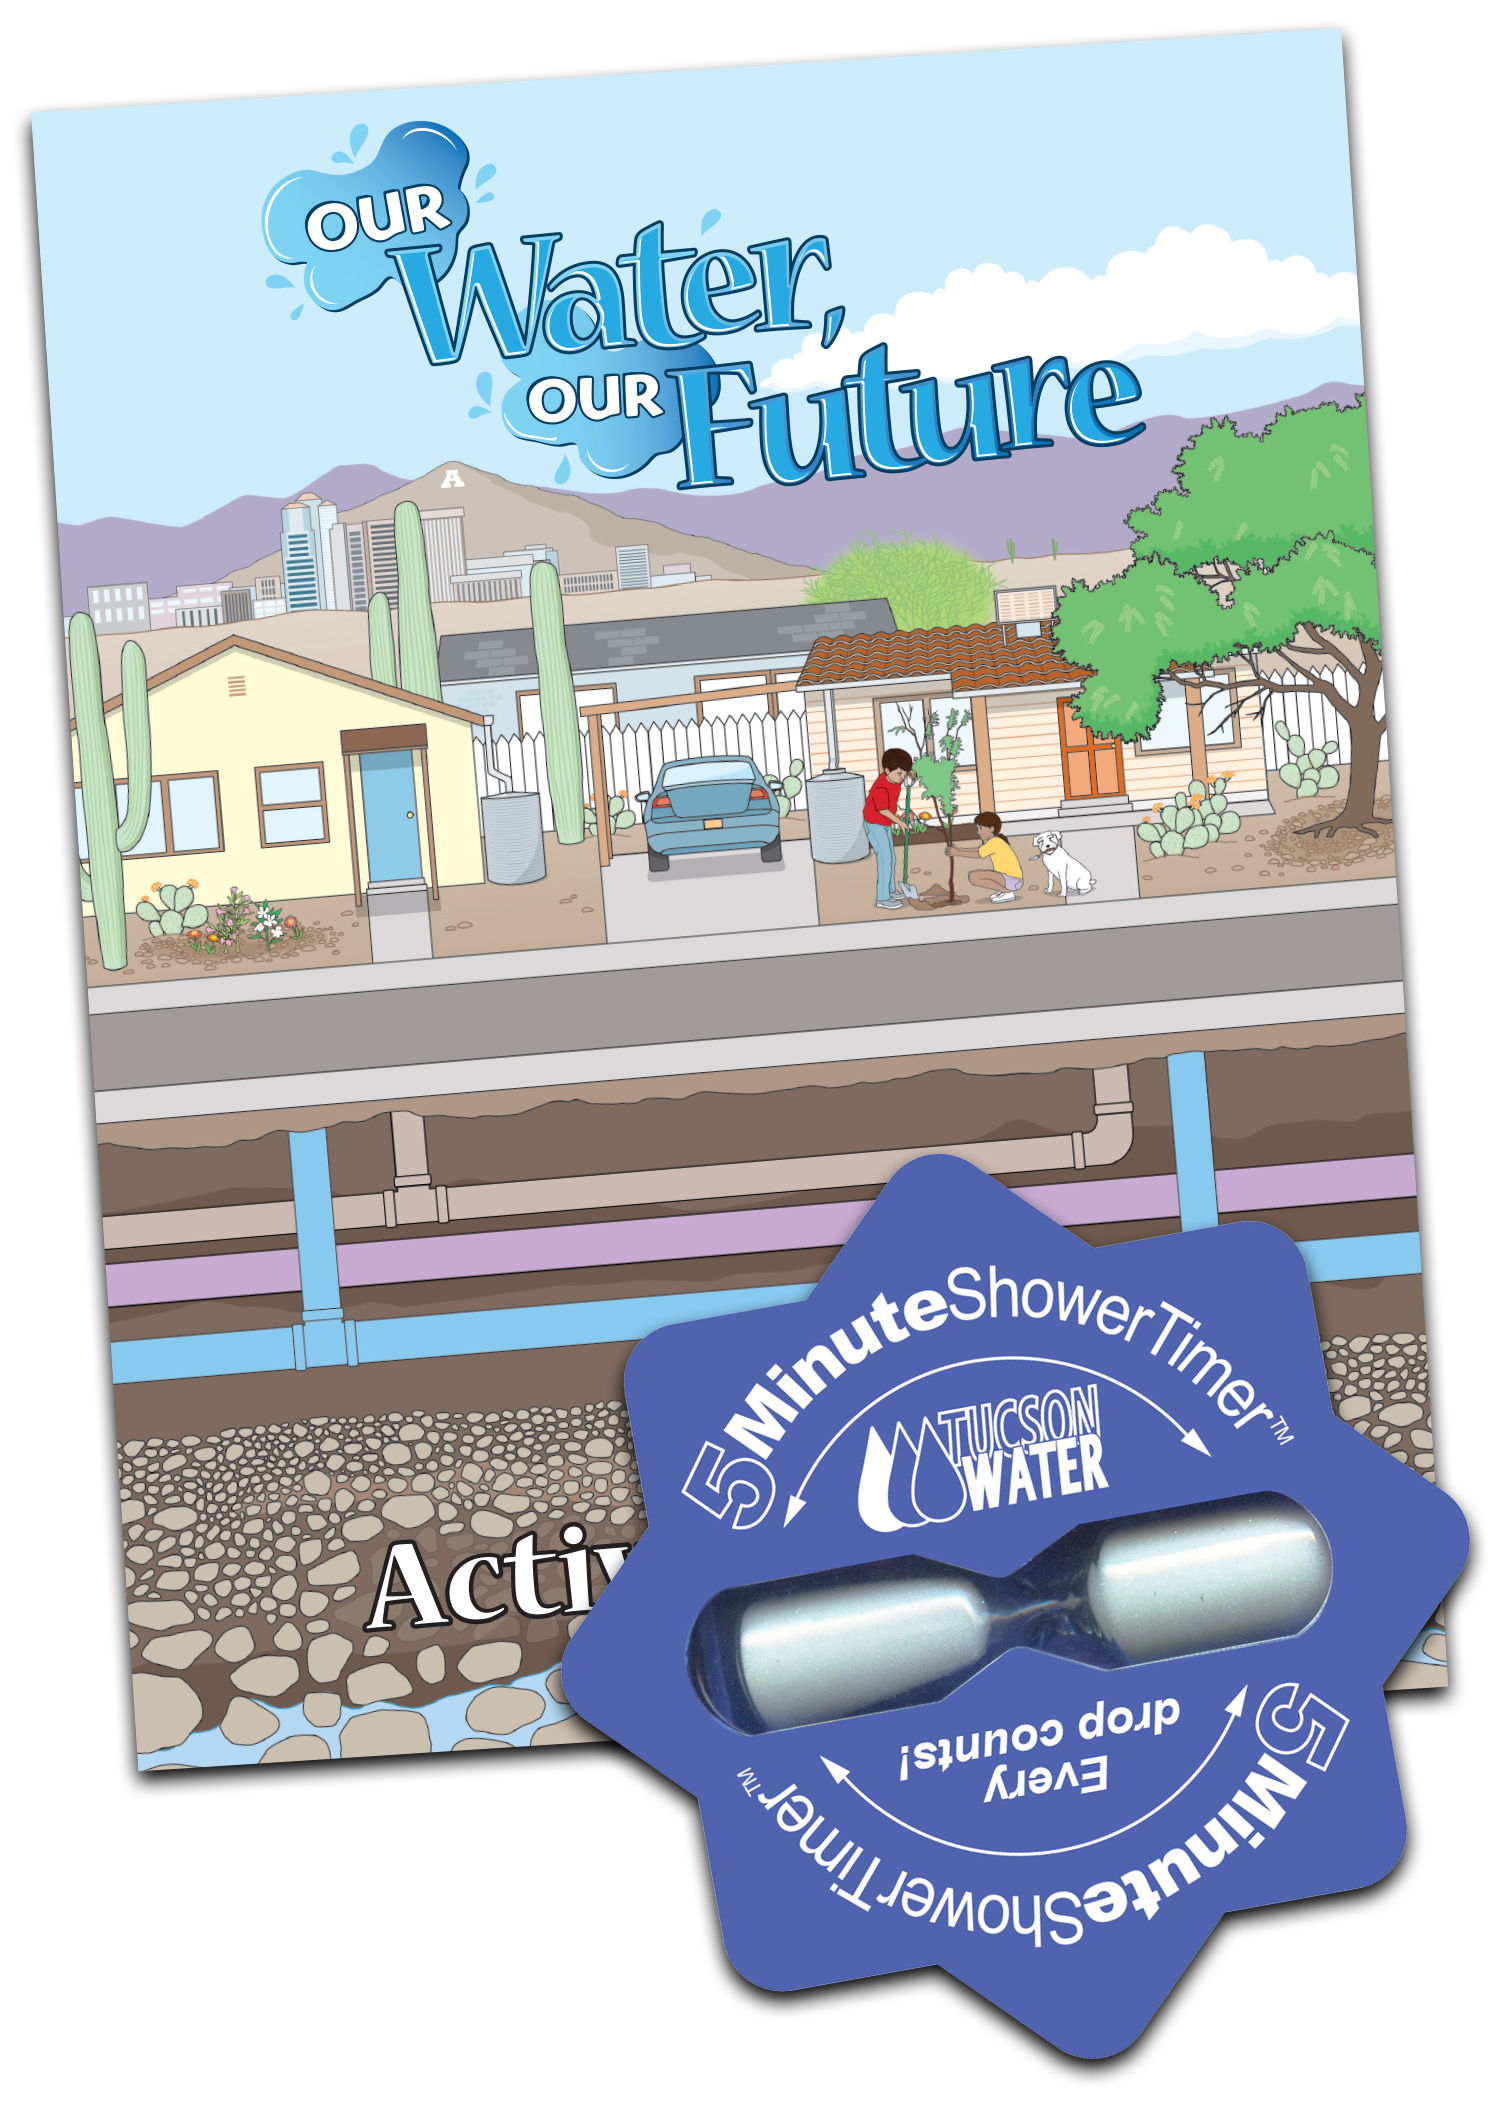 Each student receives an activity booklet and a shower timer encouraging reduced water use by limiting showers to 5 minutes or less.